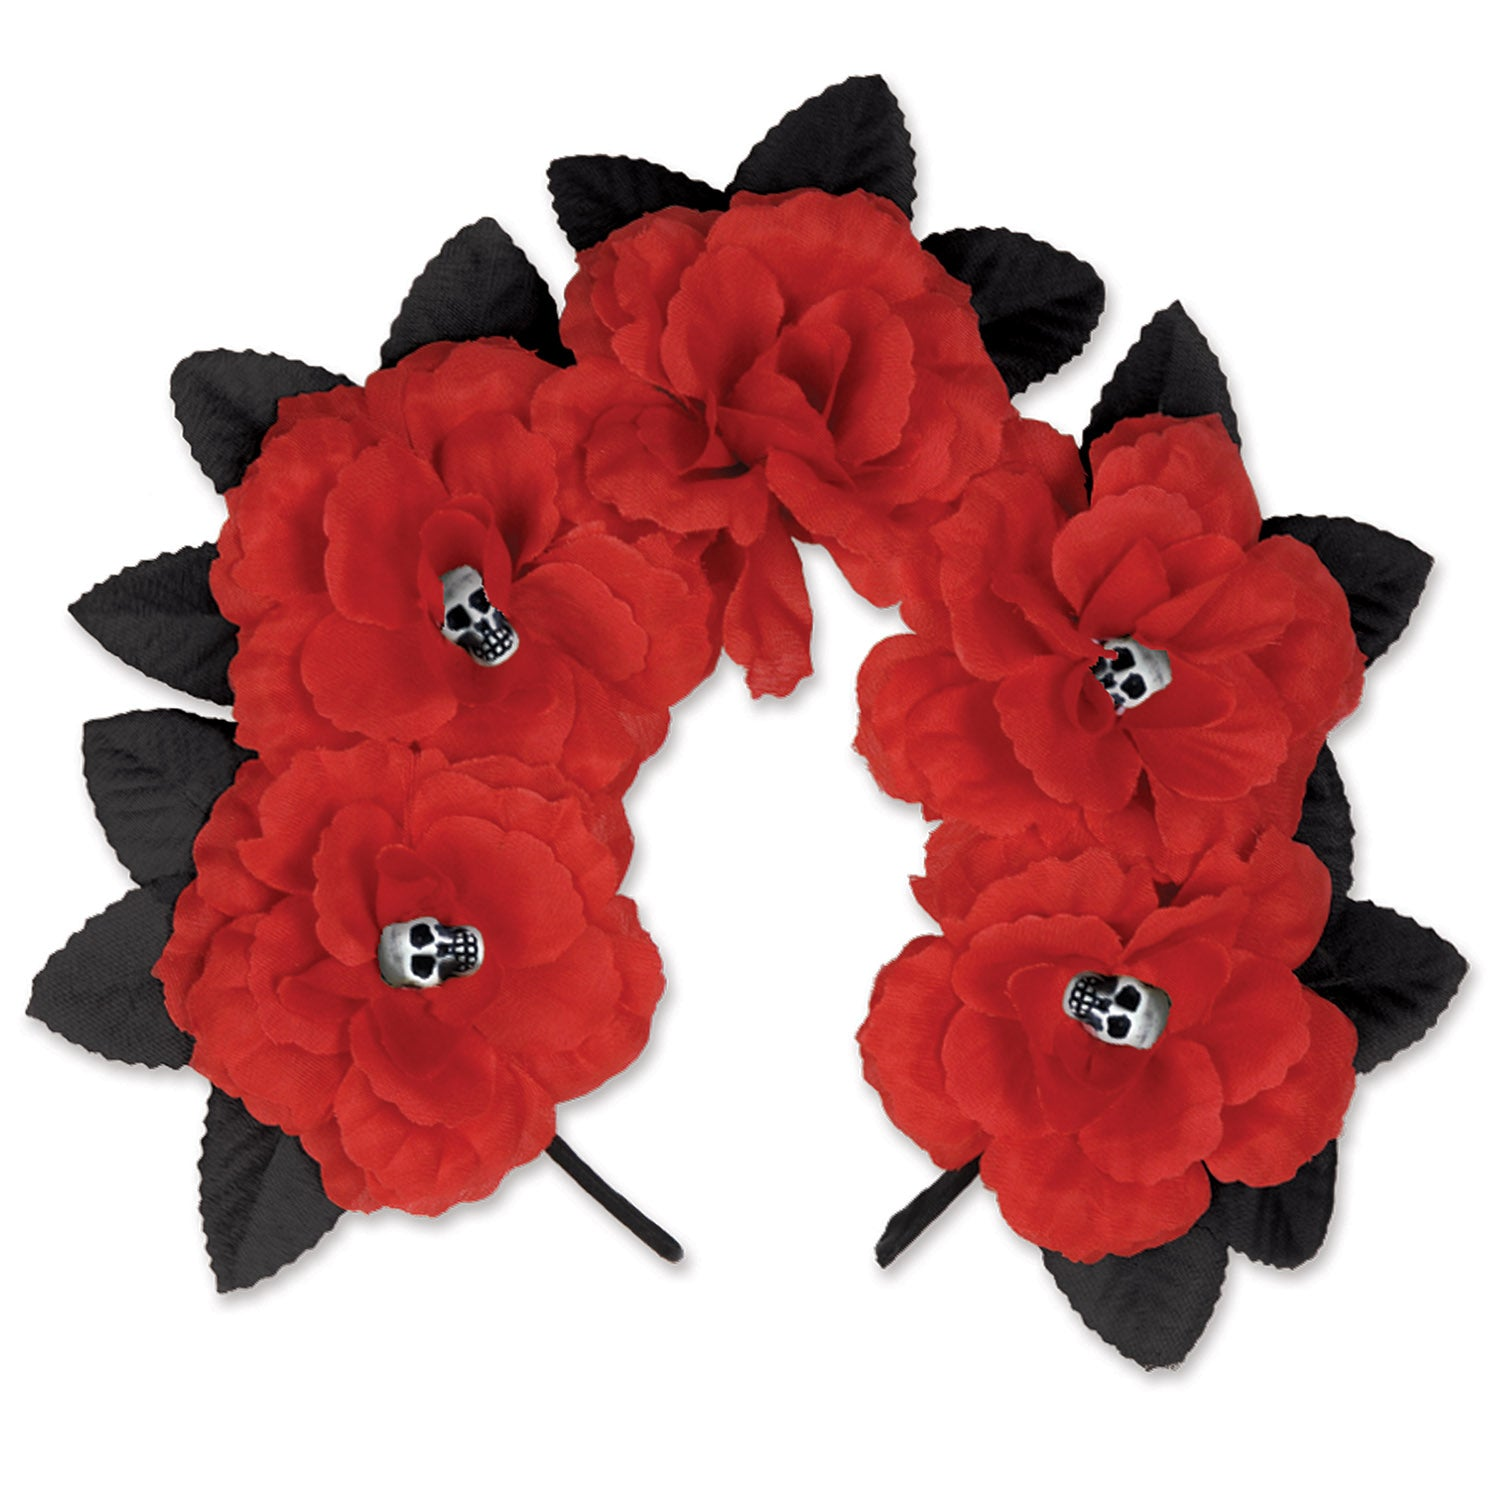 Day Of The Dead Red Floral Headband by Beistle - Day of the Dead Theme Decorations